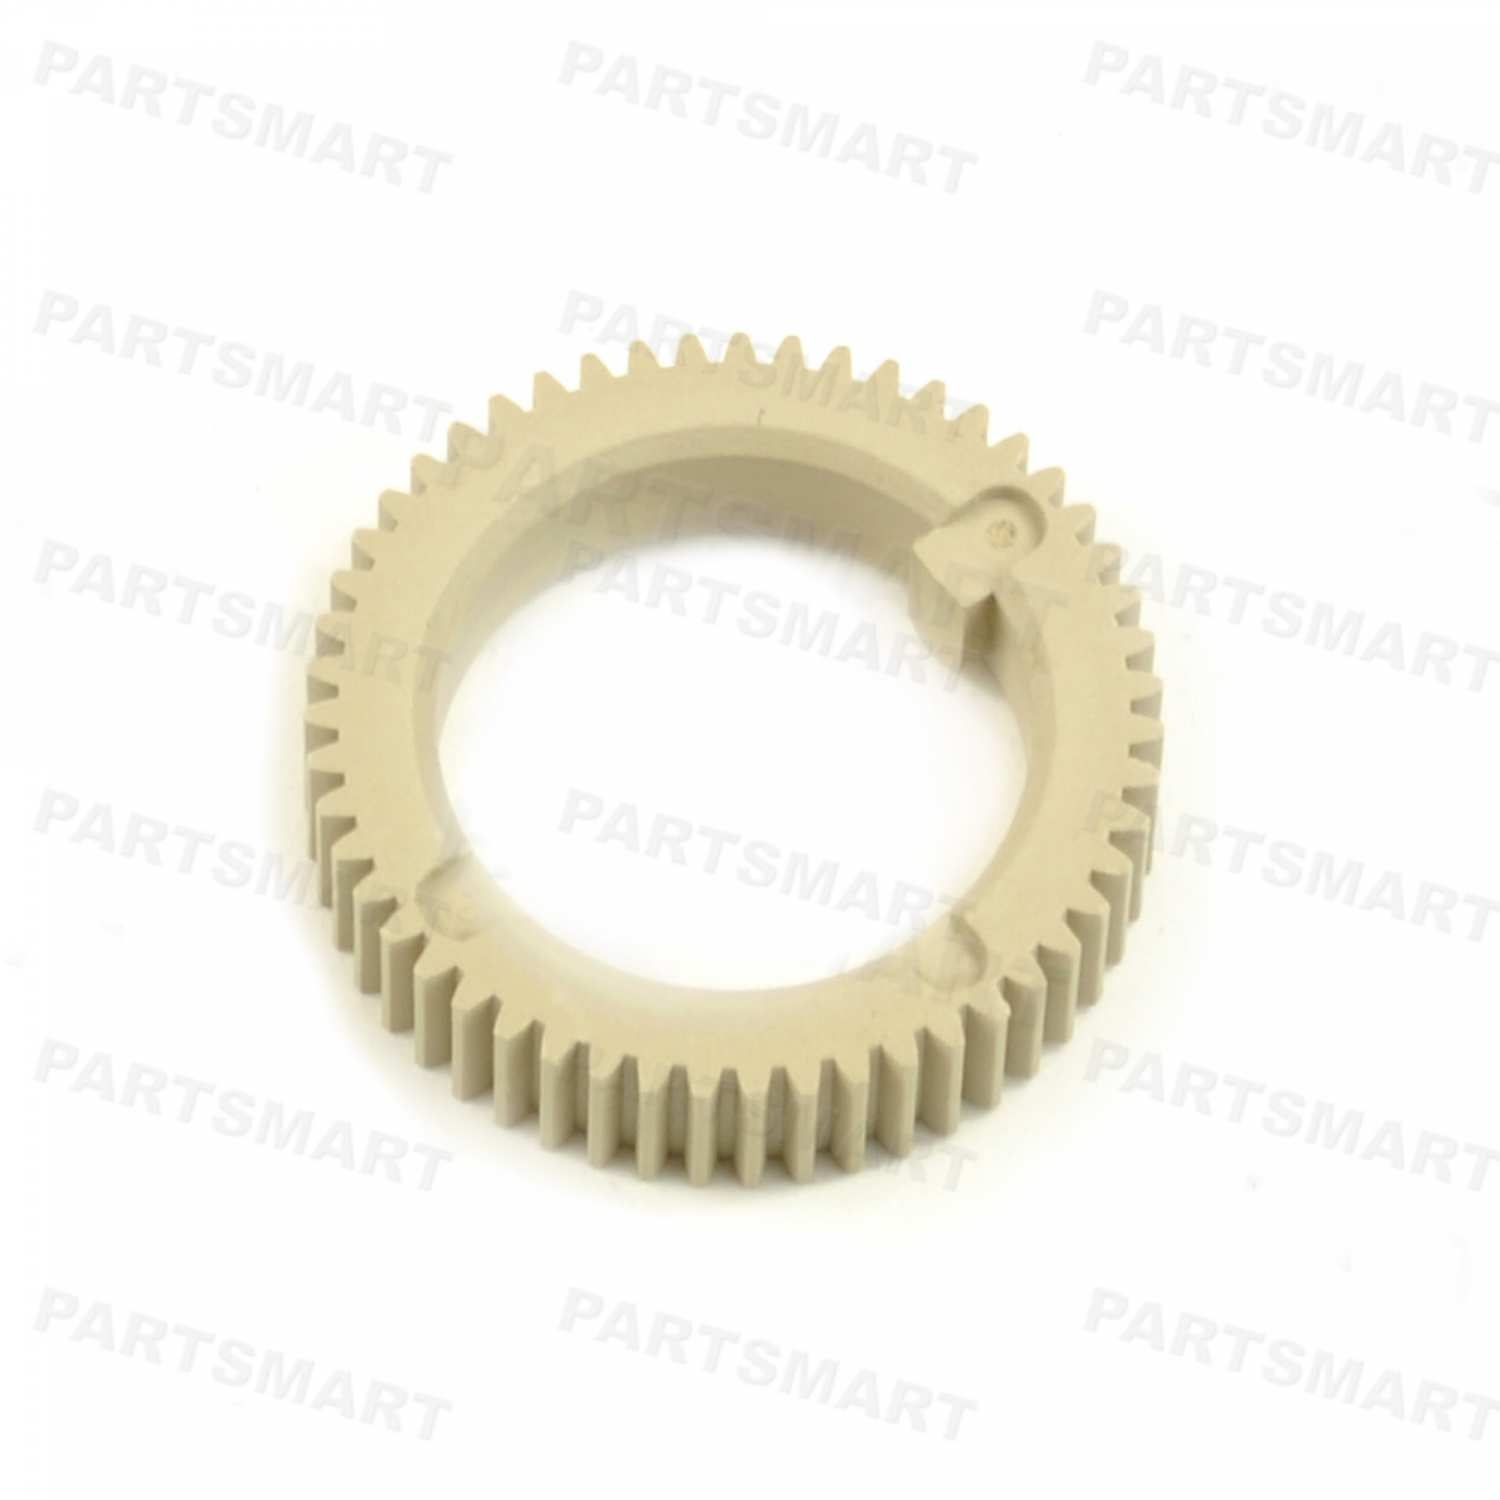 12G0332 Fuser Gear, Hot Roller (51T) for Lexmark Optra M41x